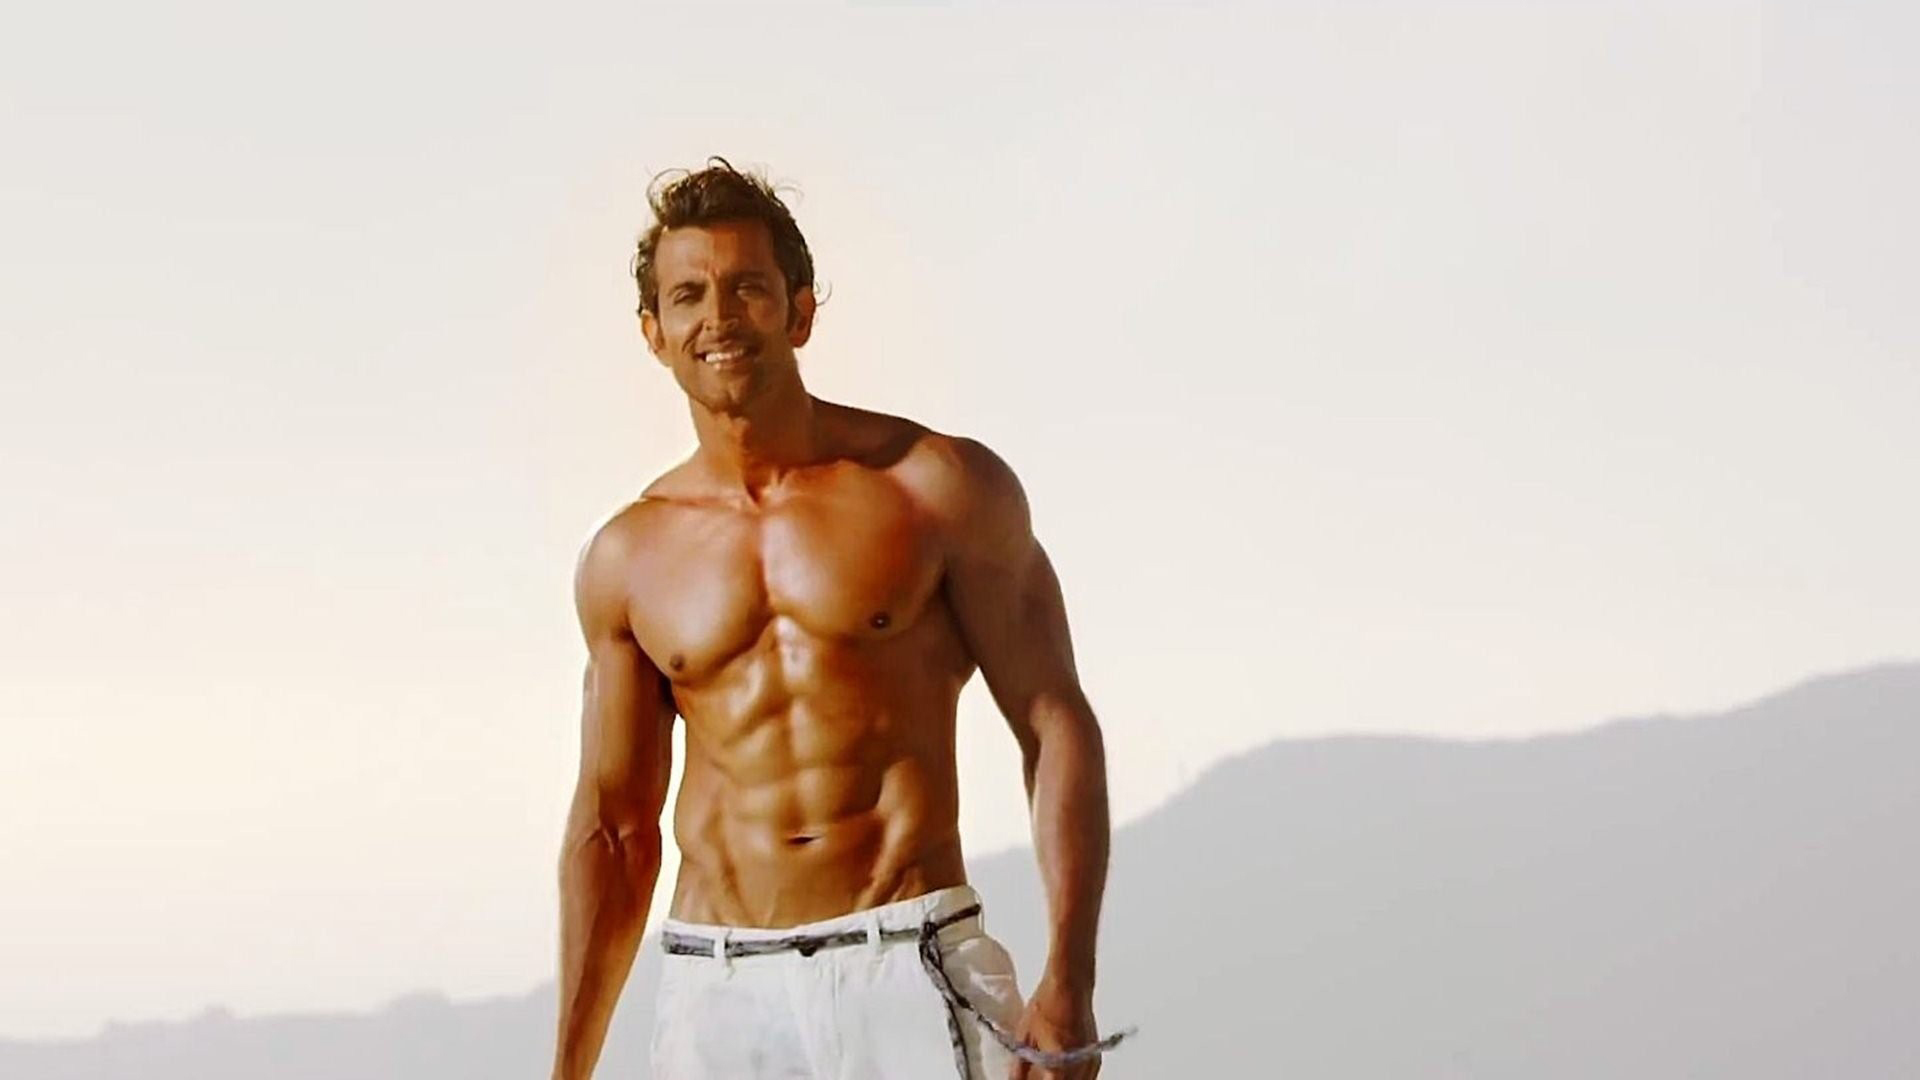 hrithik roshan downloads 4270 tags hrithik roshan actors celebritiesHrithik Roshan Body 2013